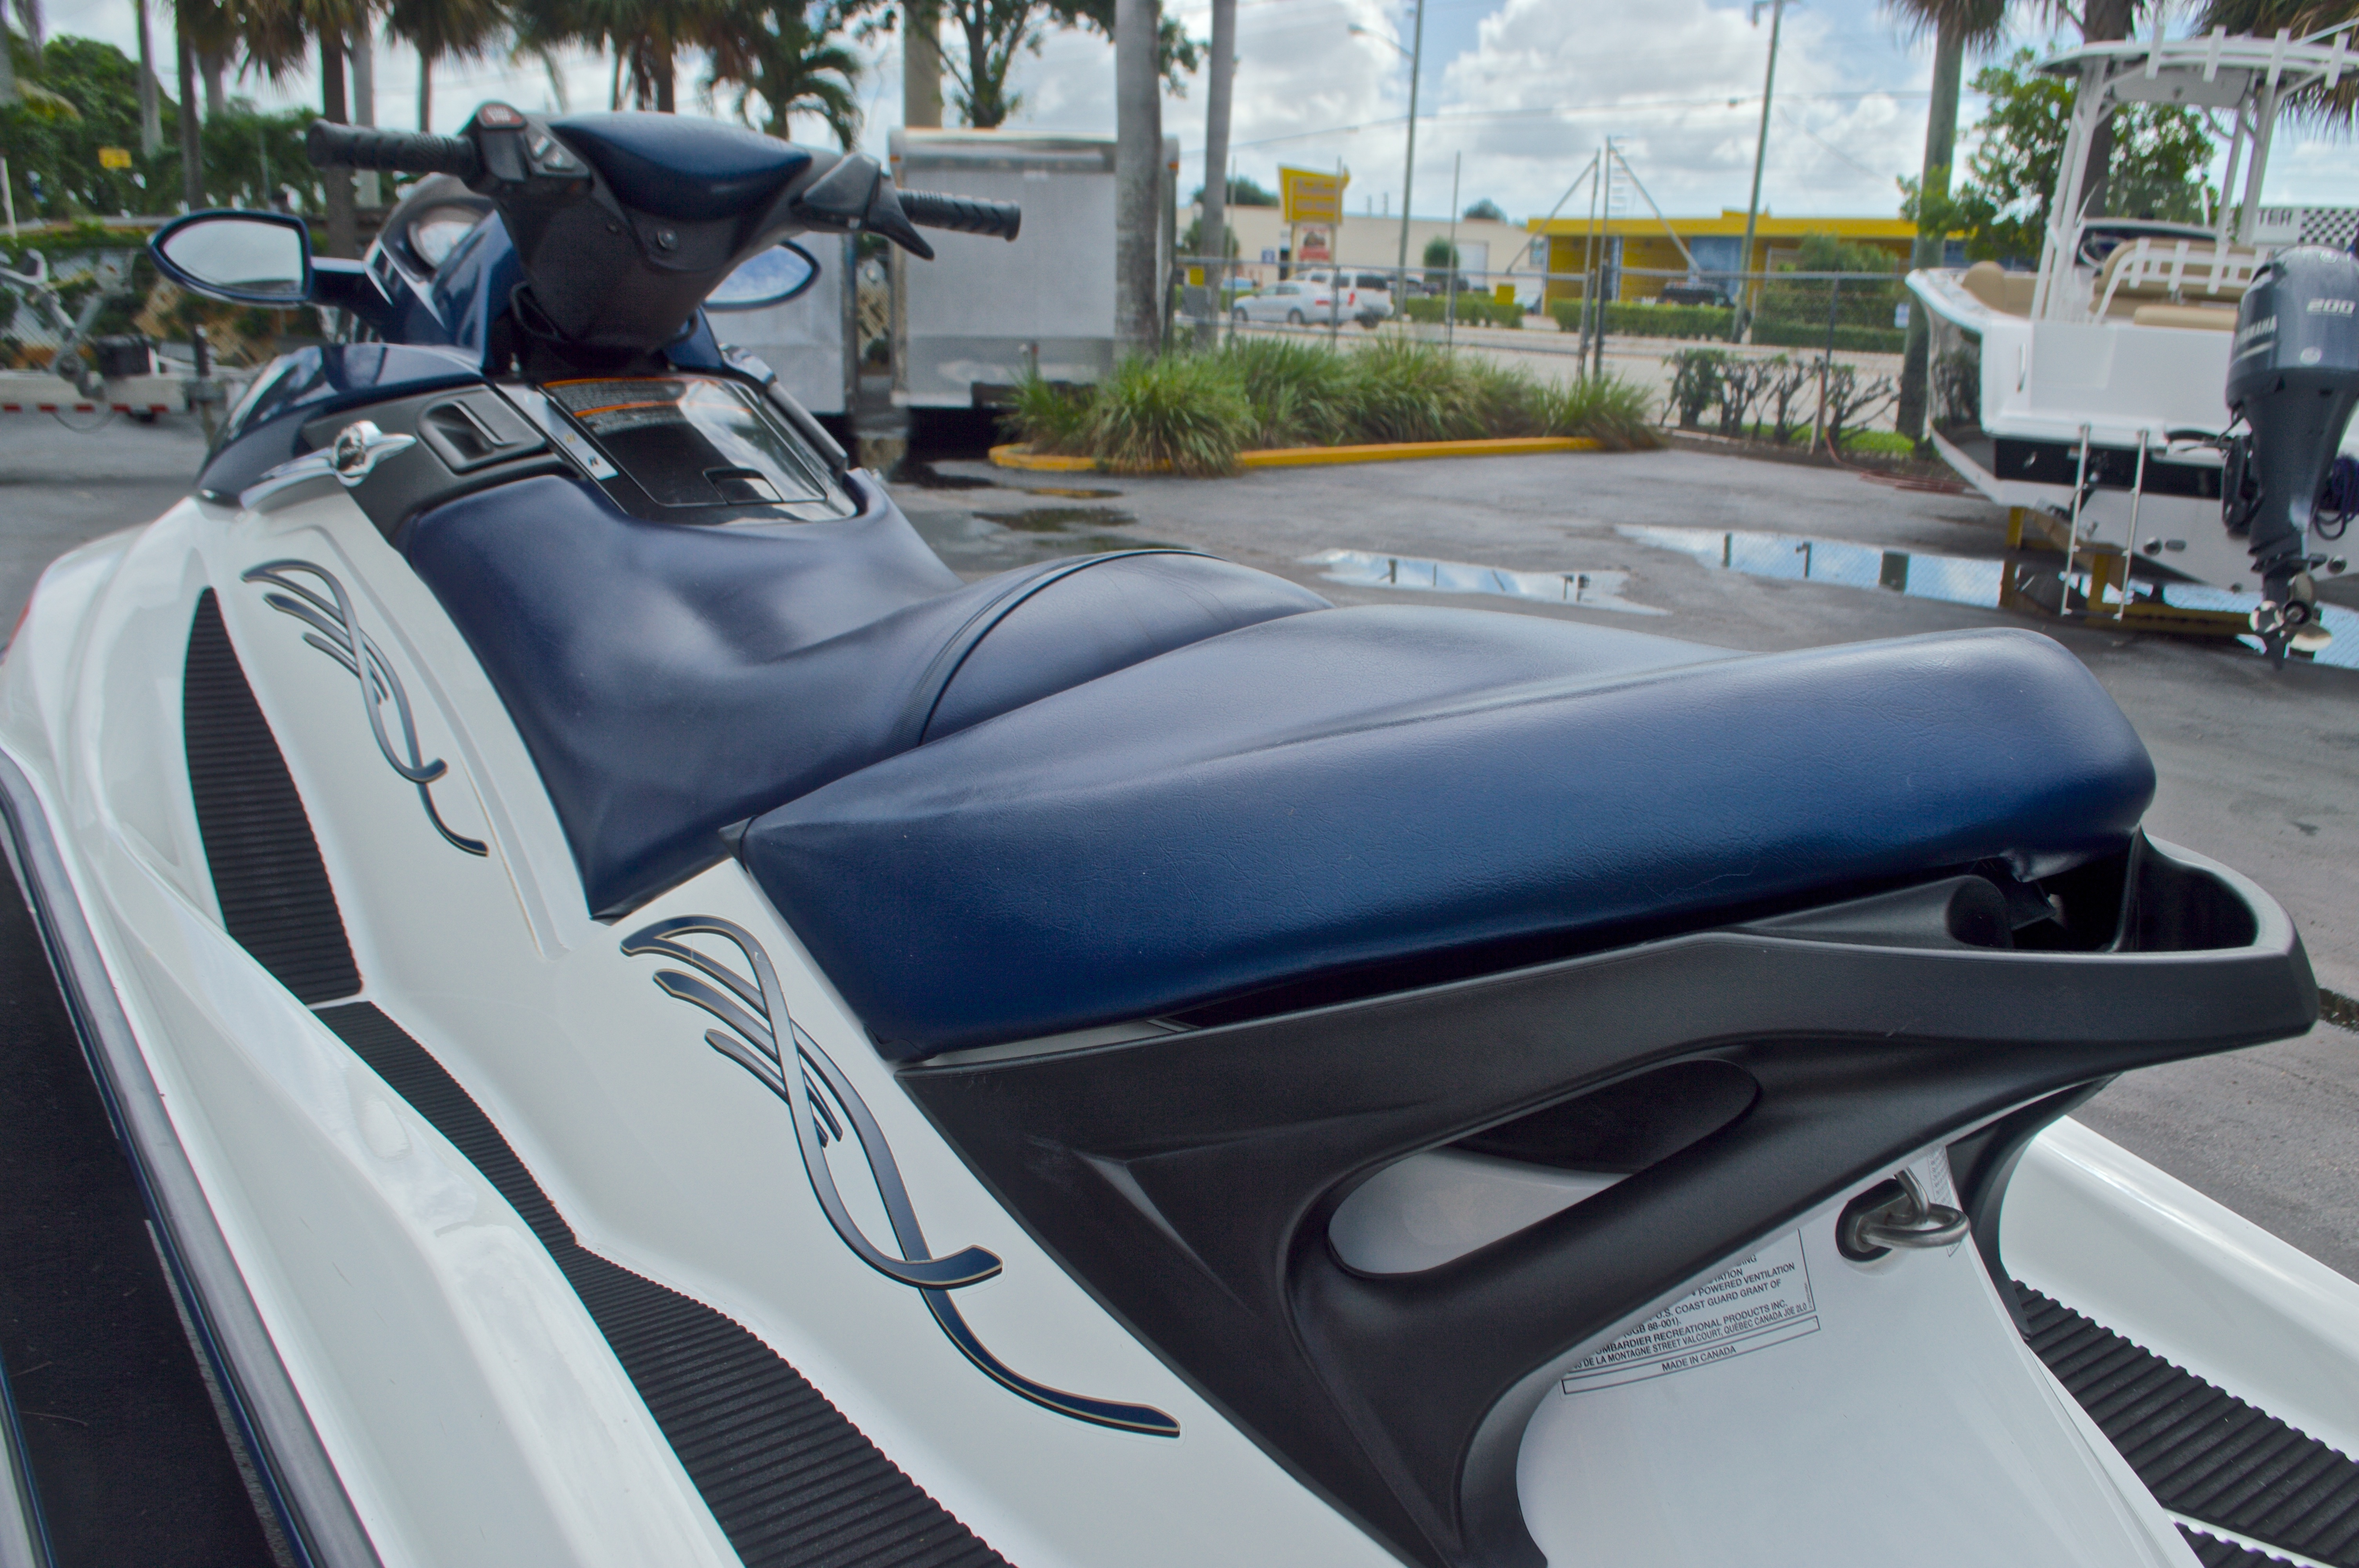 Used 2005 Sea Doo Gtx 4 Tec Boat For Sale In West Palm